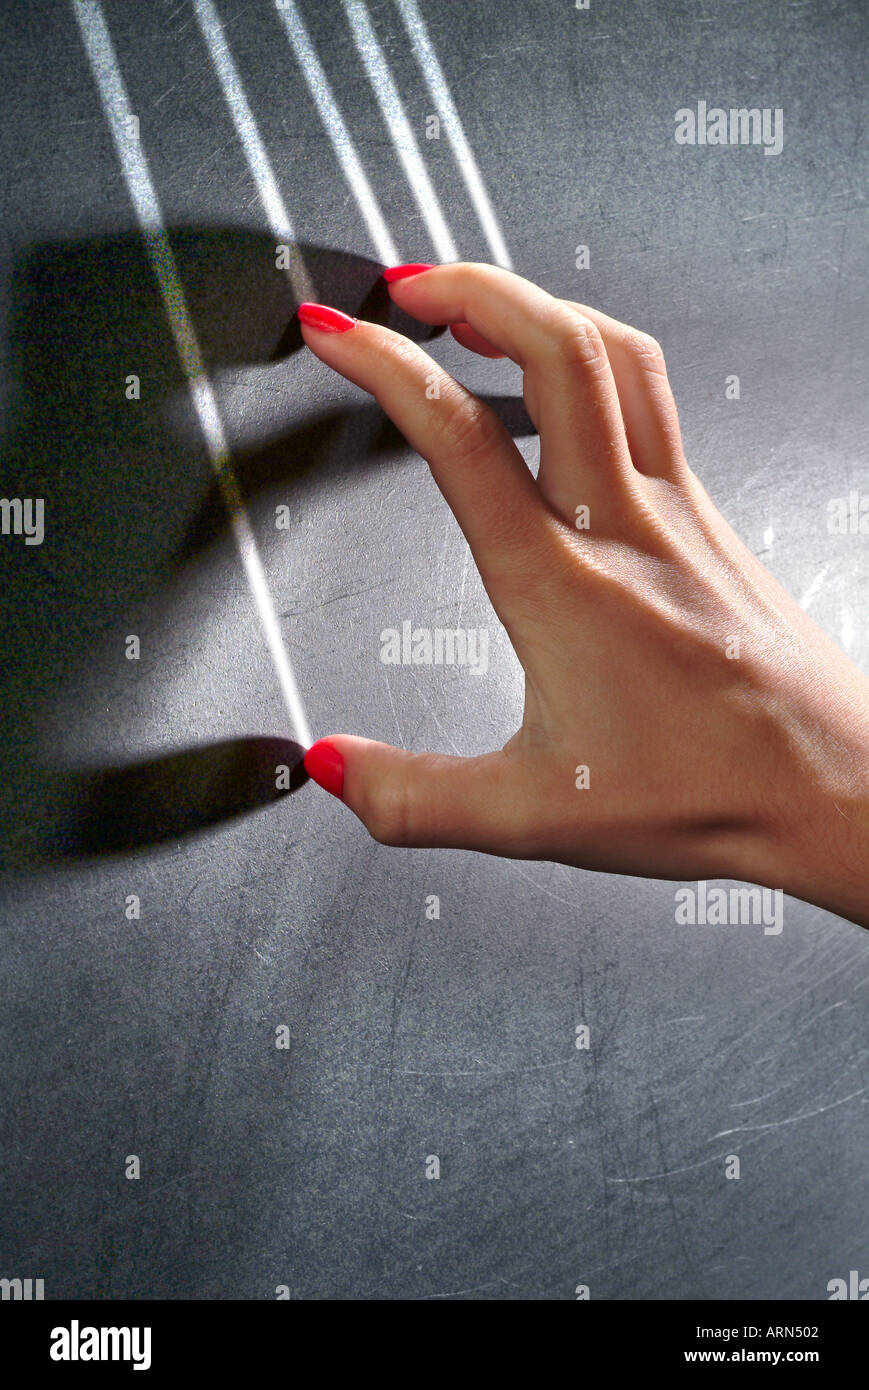 fingernails scratching a chalkboard Stock Photo: 2987265 - Alamy